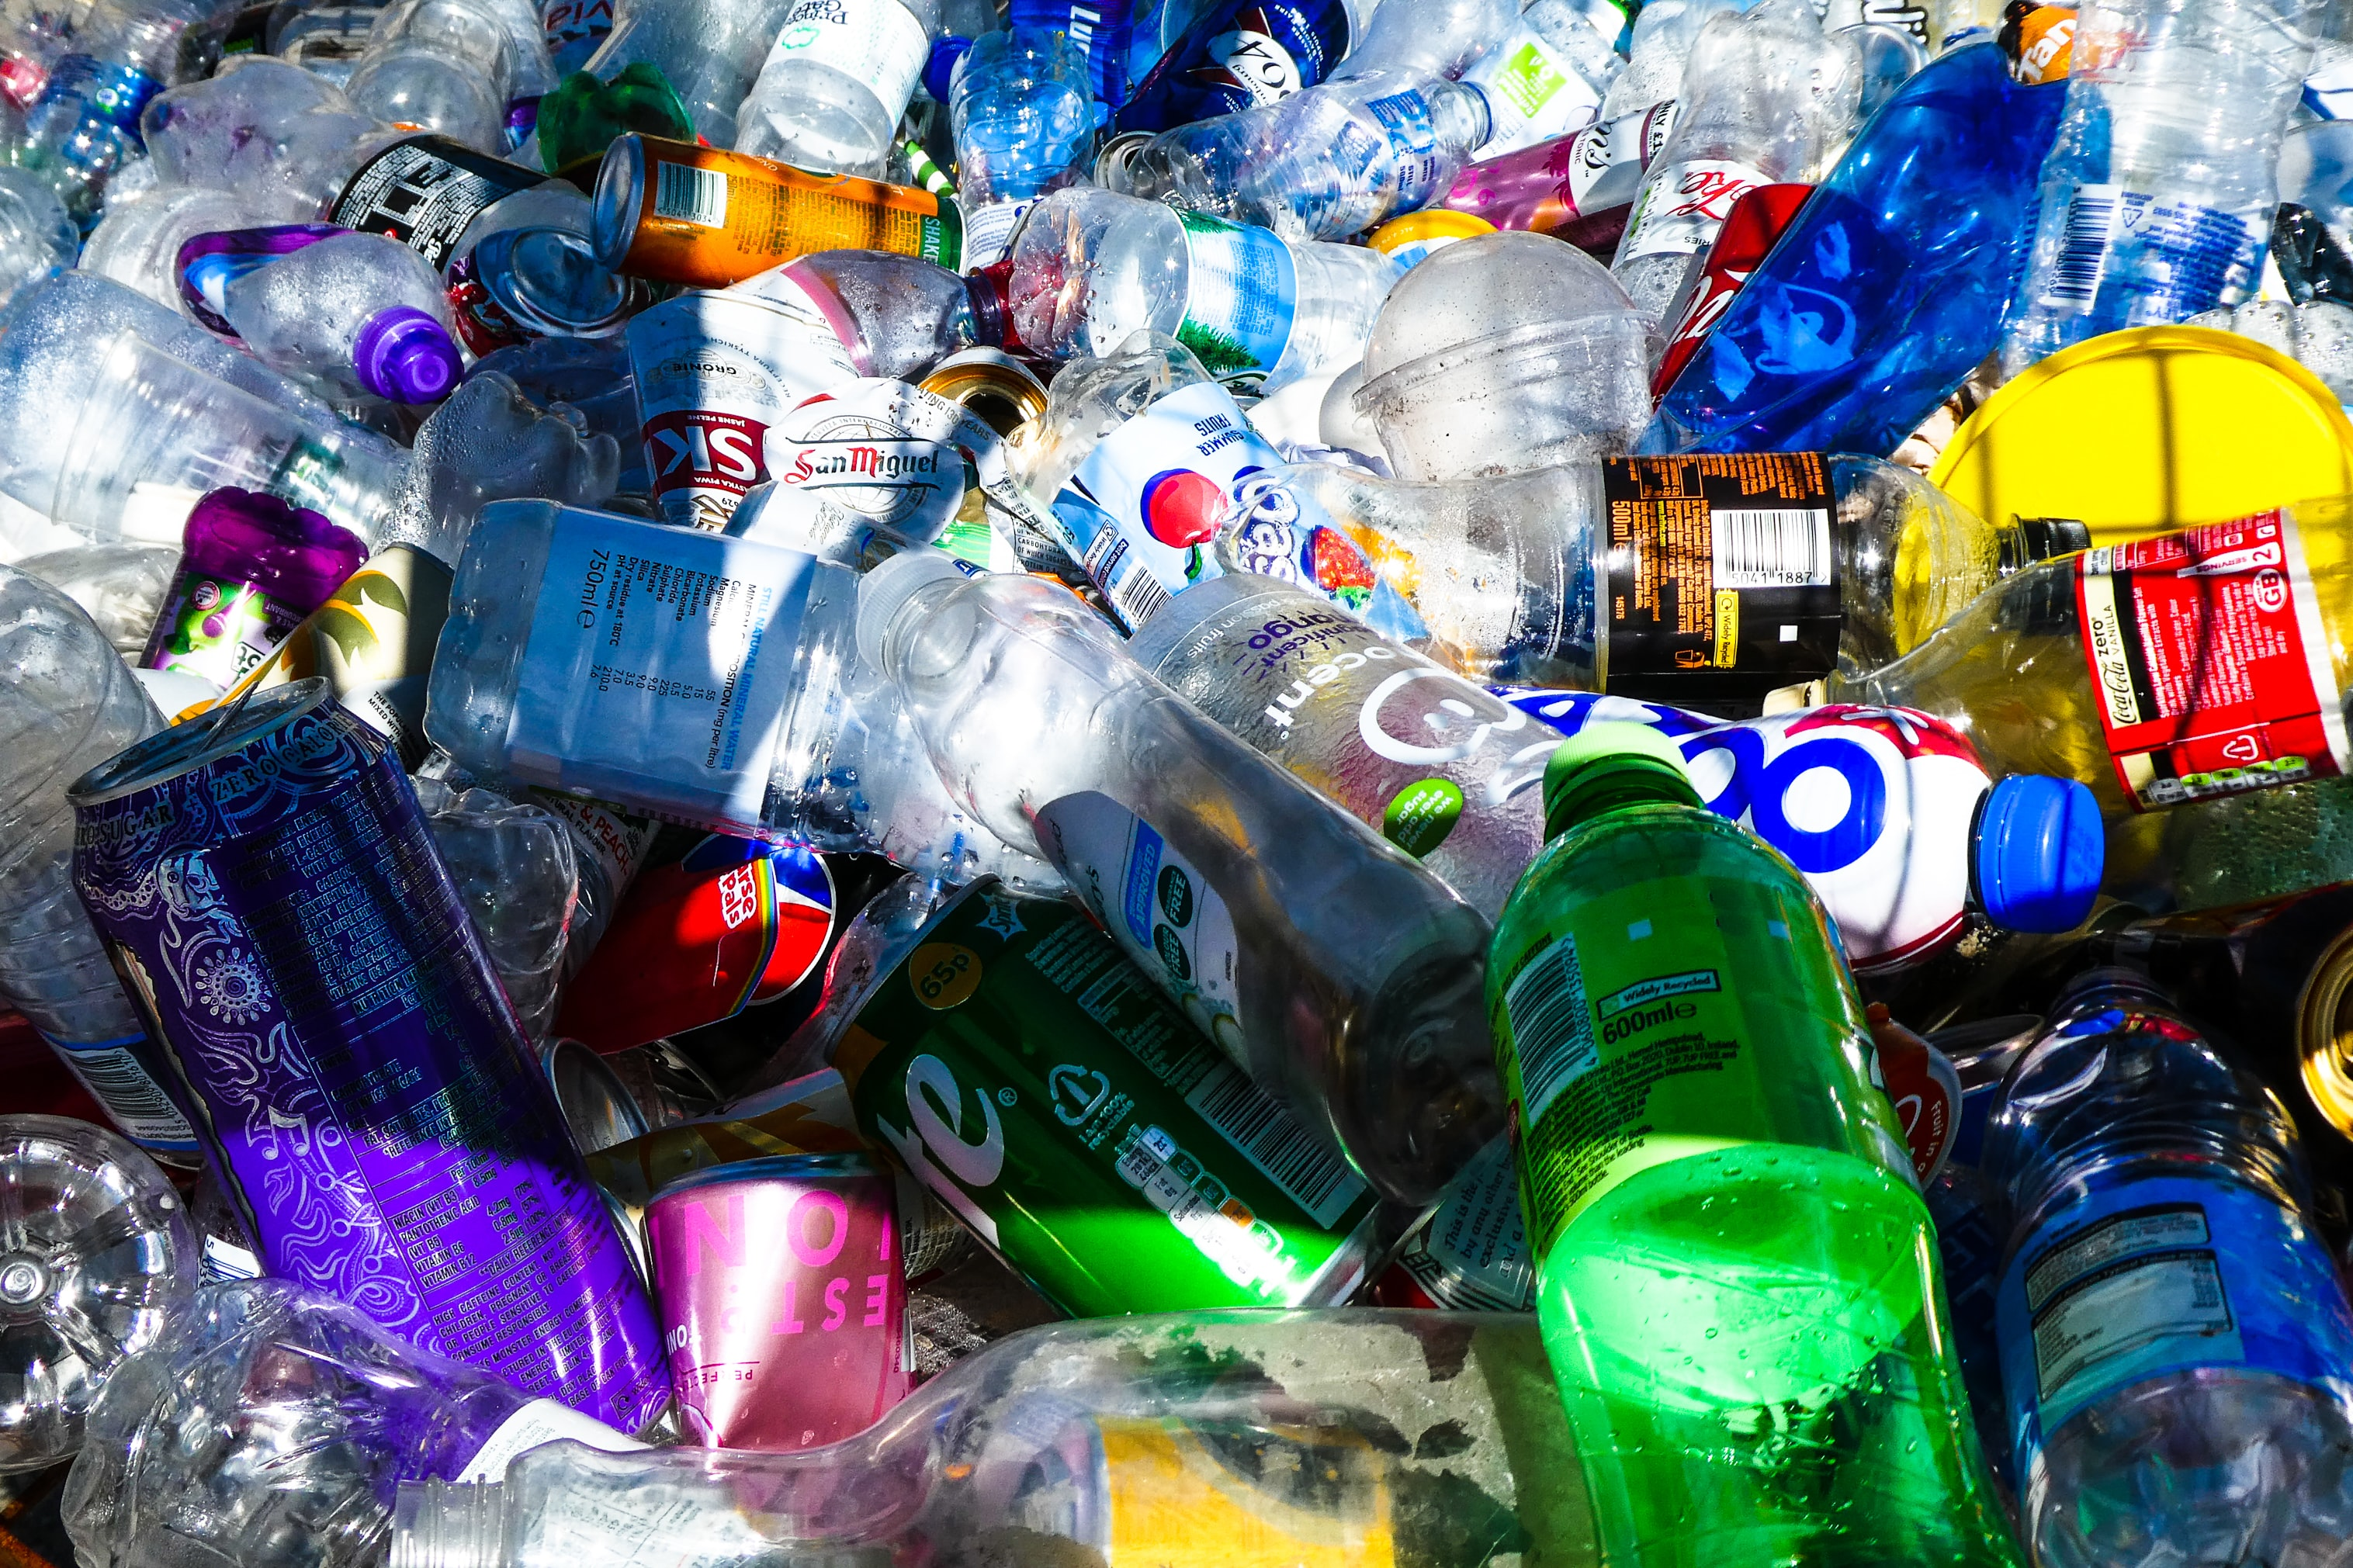 Malaysian startup Klean recognised for plastic waste reduction